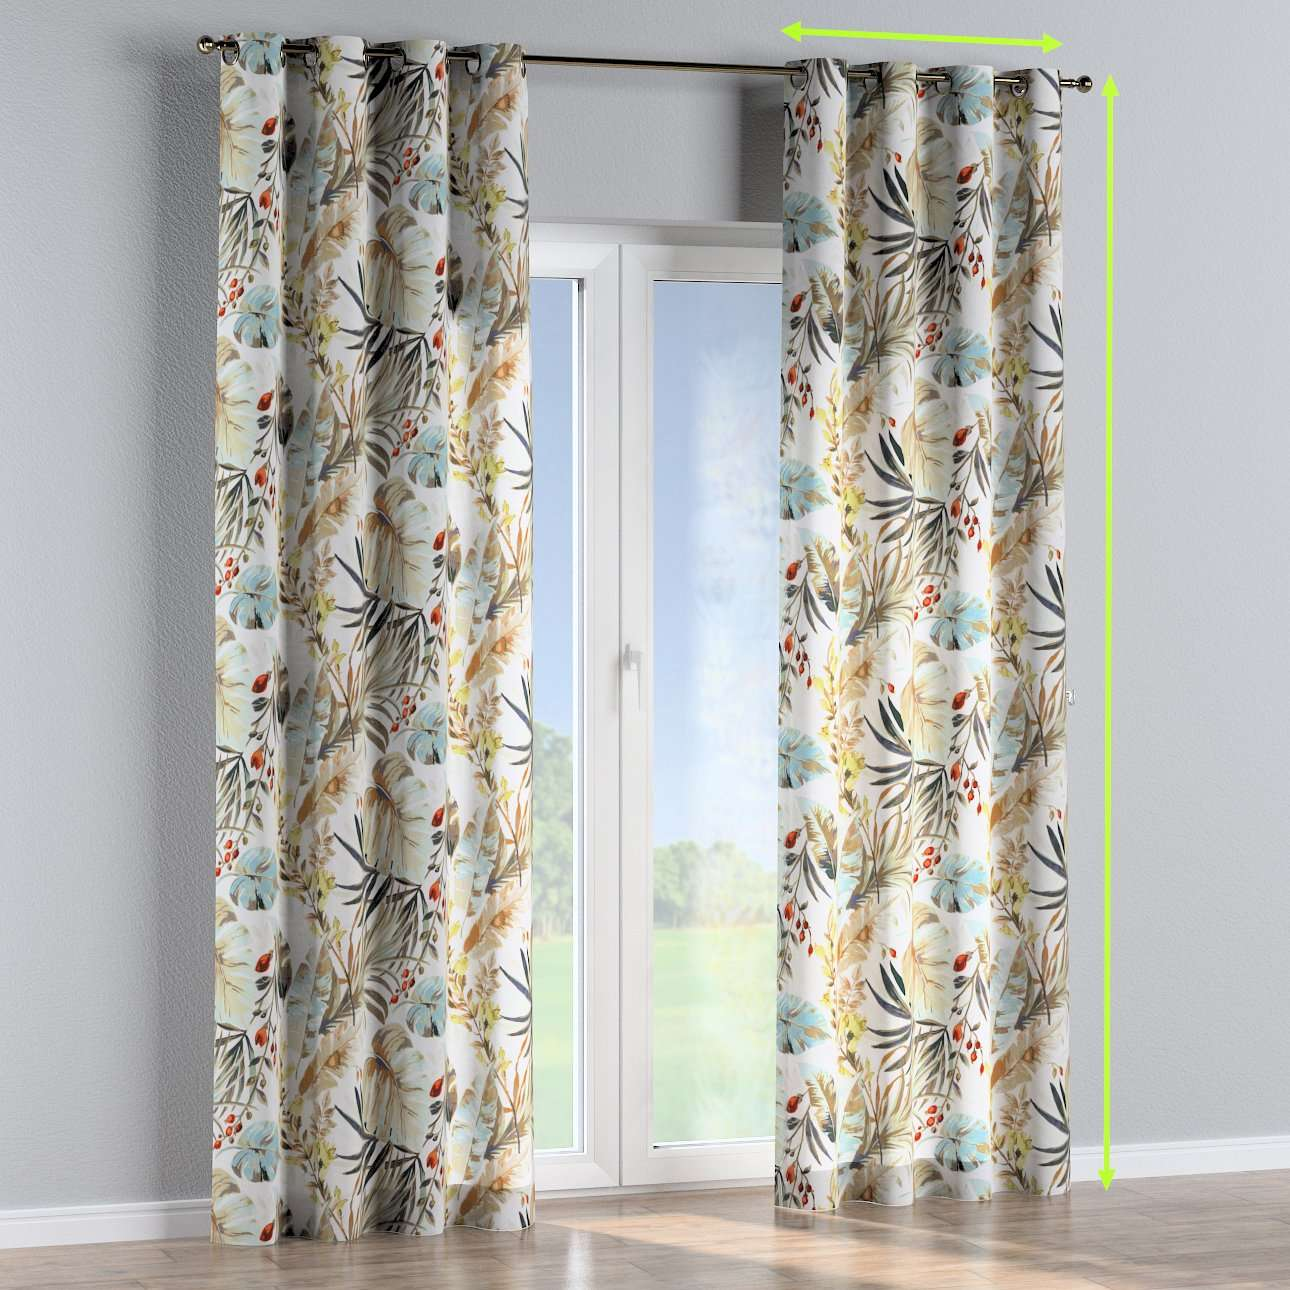 Eyelet lined curtains in collection Urban Jungle, fabric: 141-42